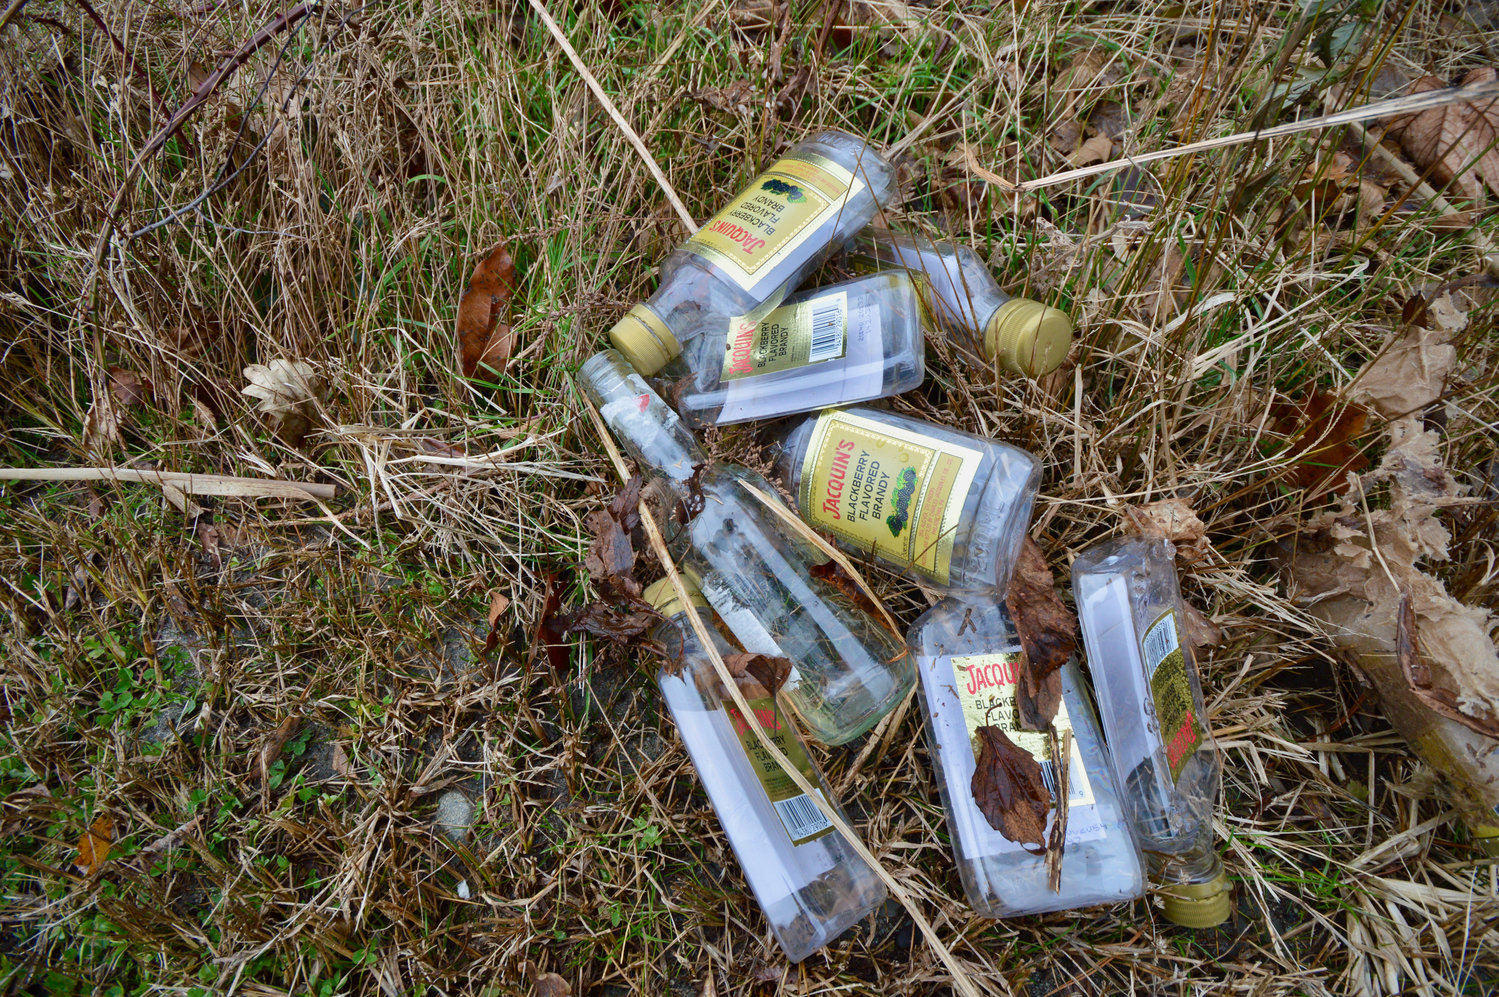 A small sampling of bottles of liquor Ms. Haga quickly found discarded behind a thicket of brush near the upper pond at Melville.